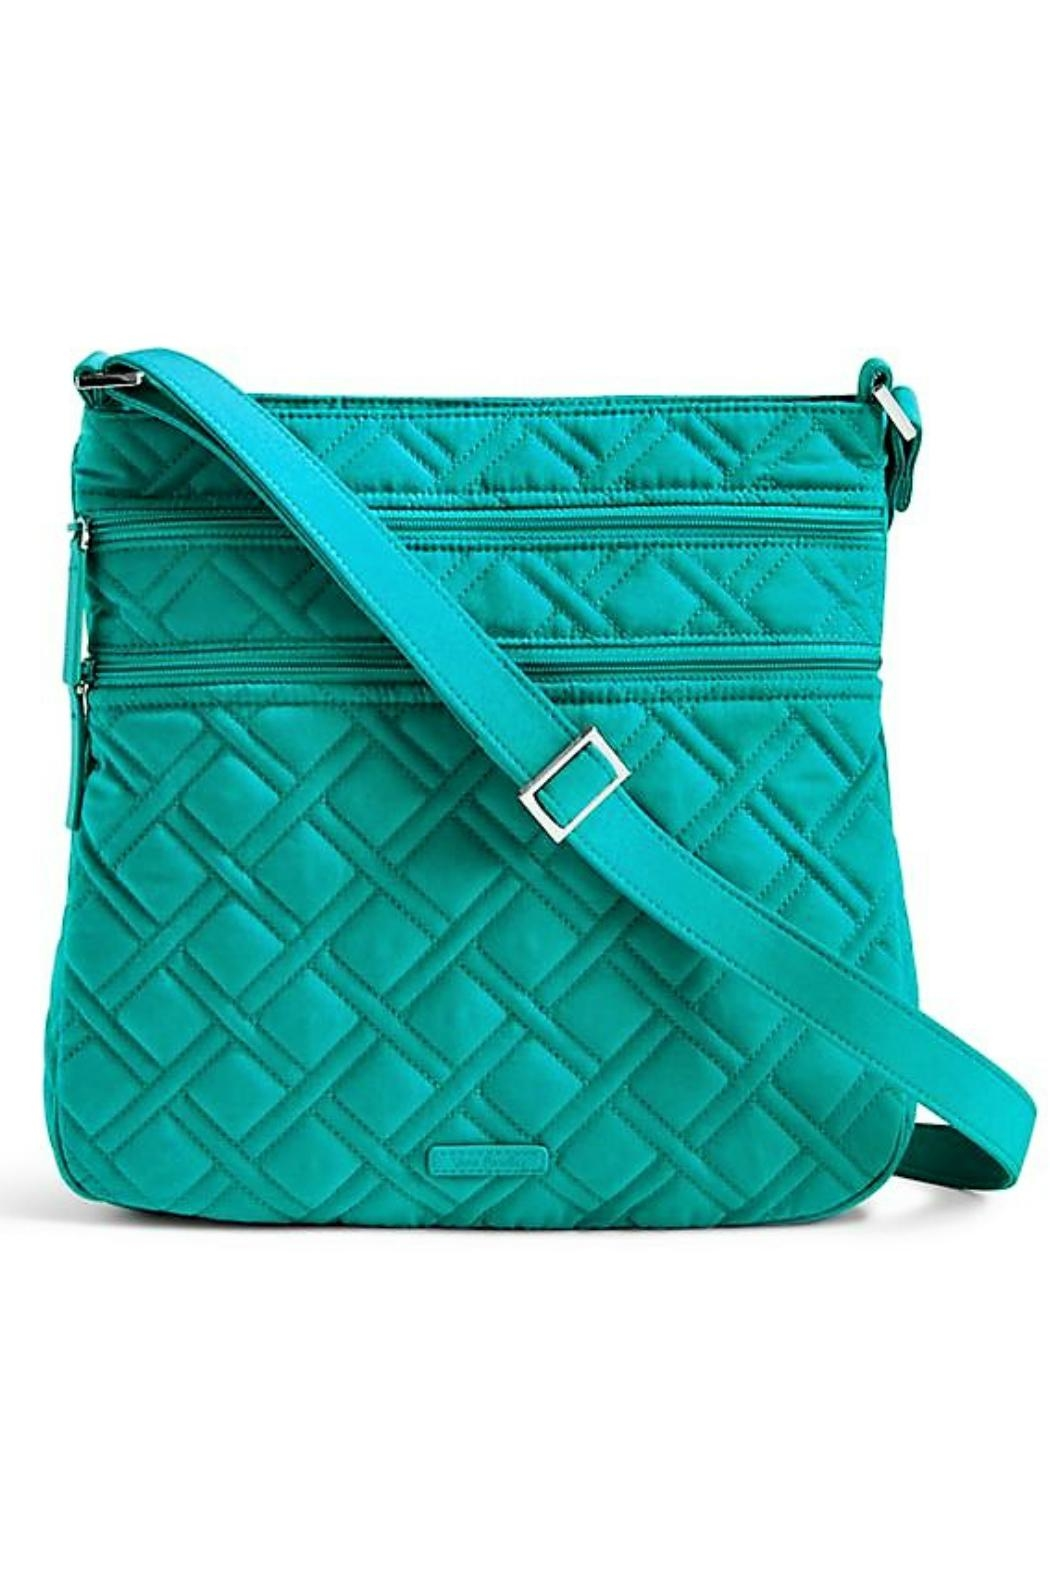 Vera Bradley Turquoise Sea Triple Crossbody - Main Image